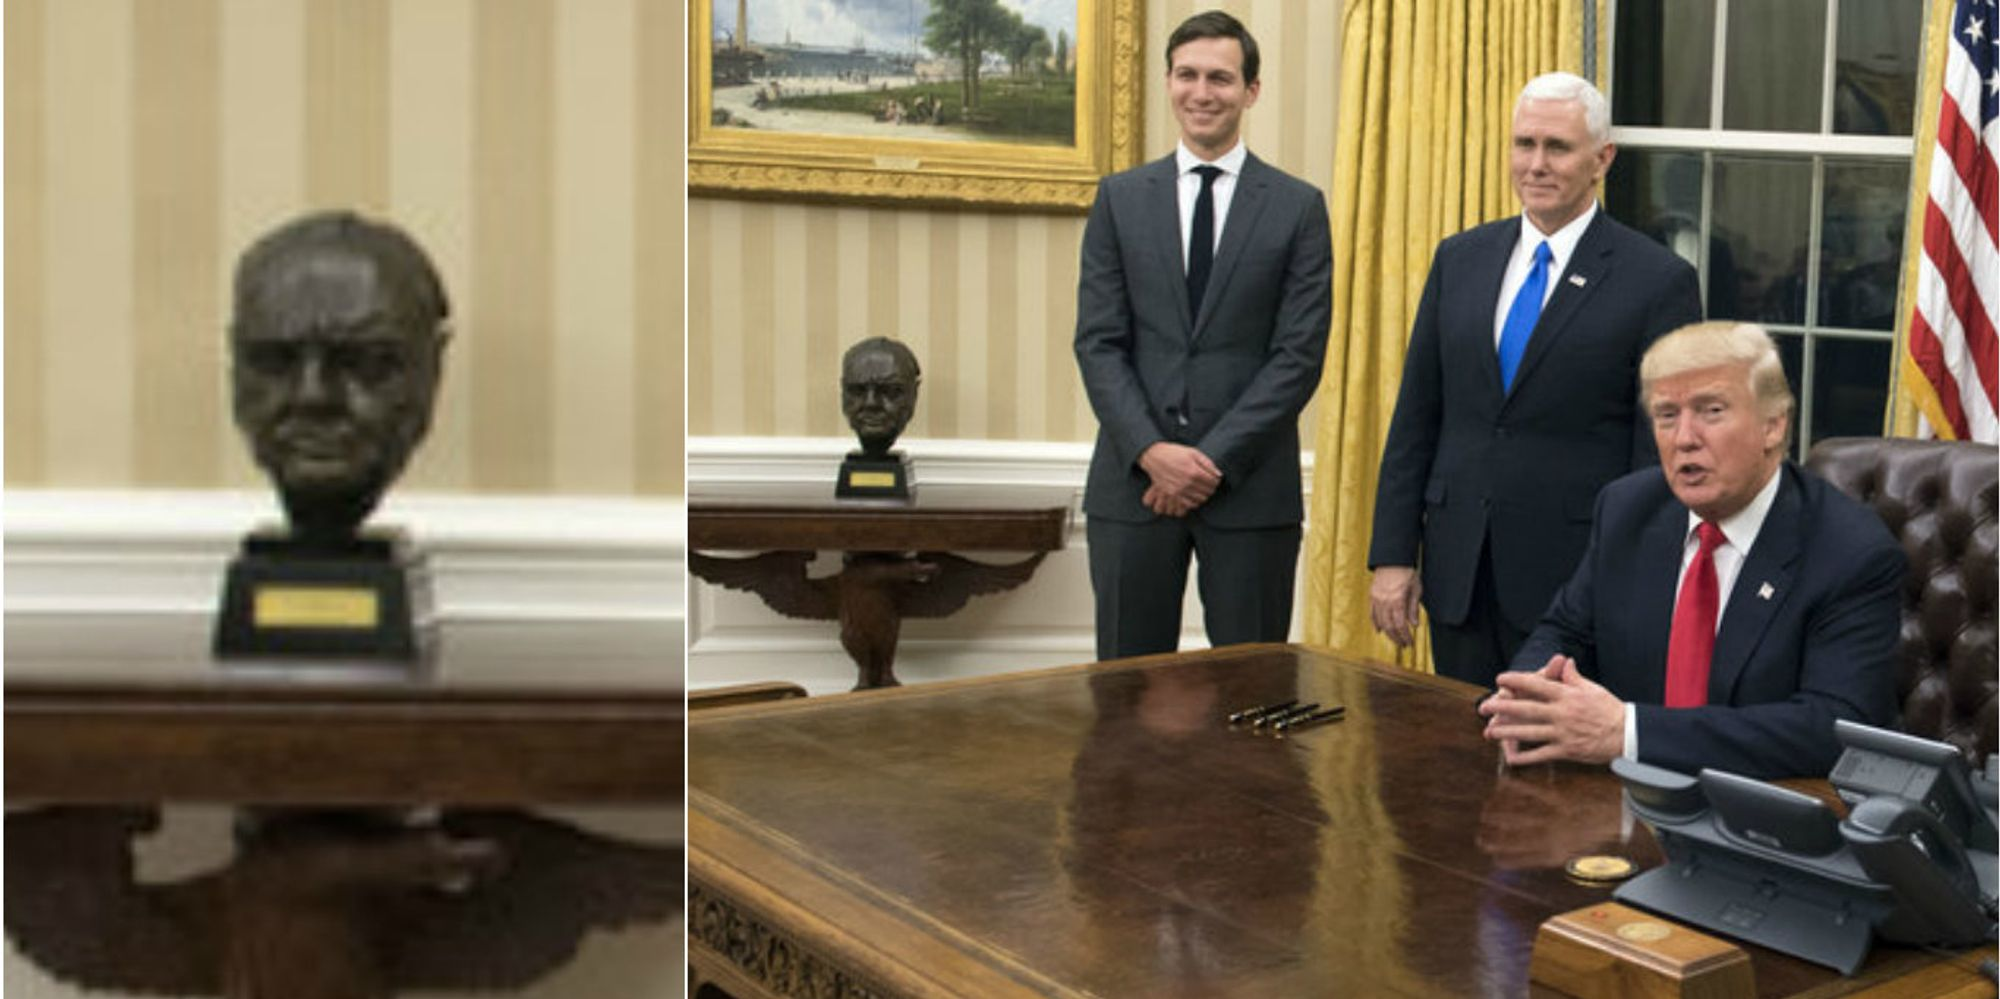 President Donald Trump Returns Bust Of Sir Winston